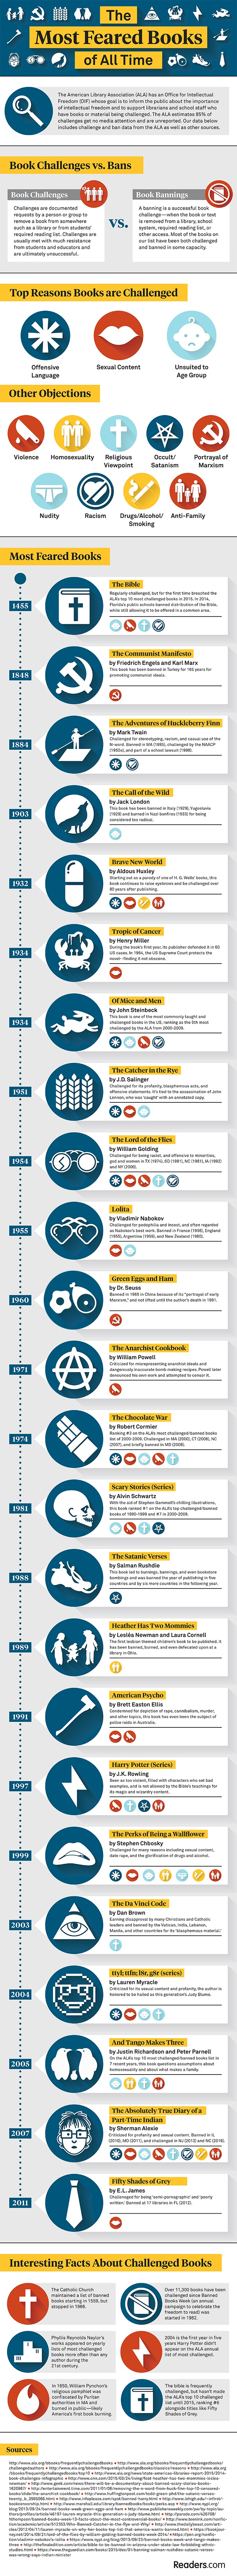 24 most feared books of all time #infographic